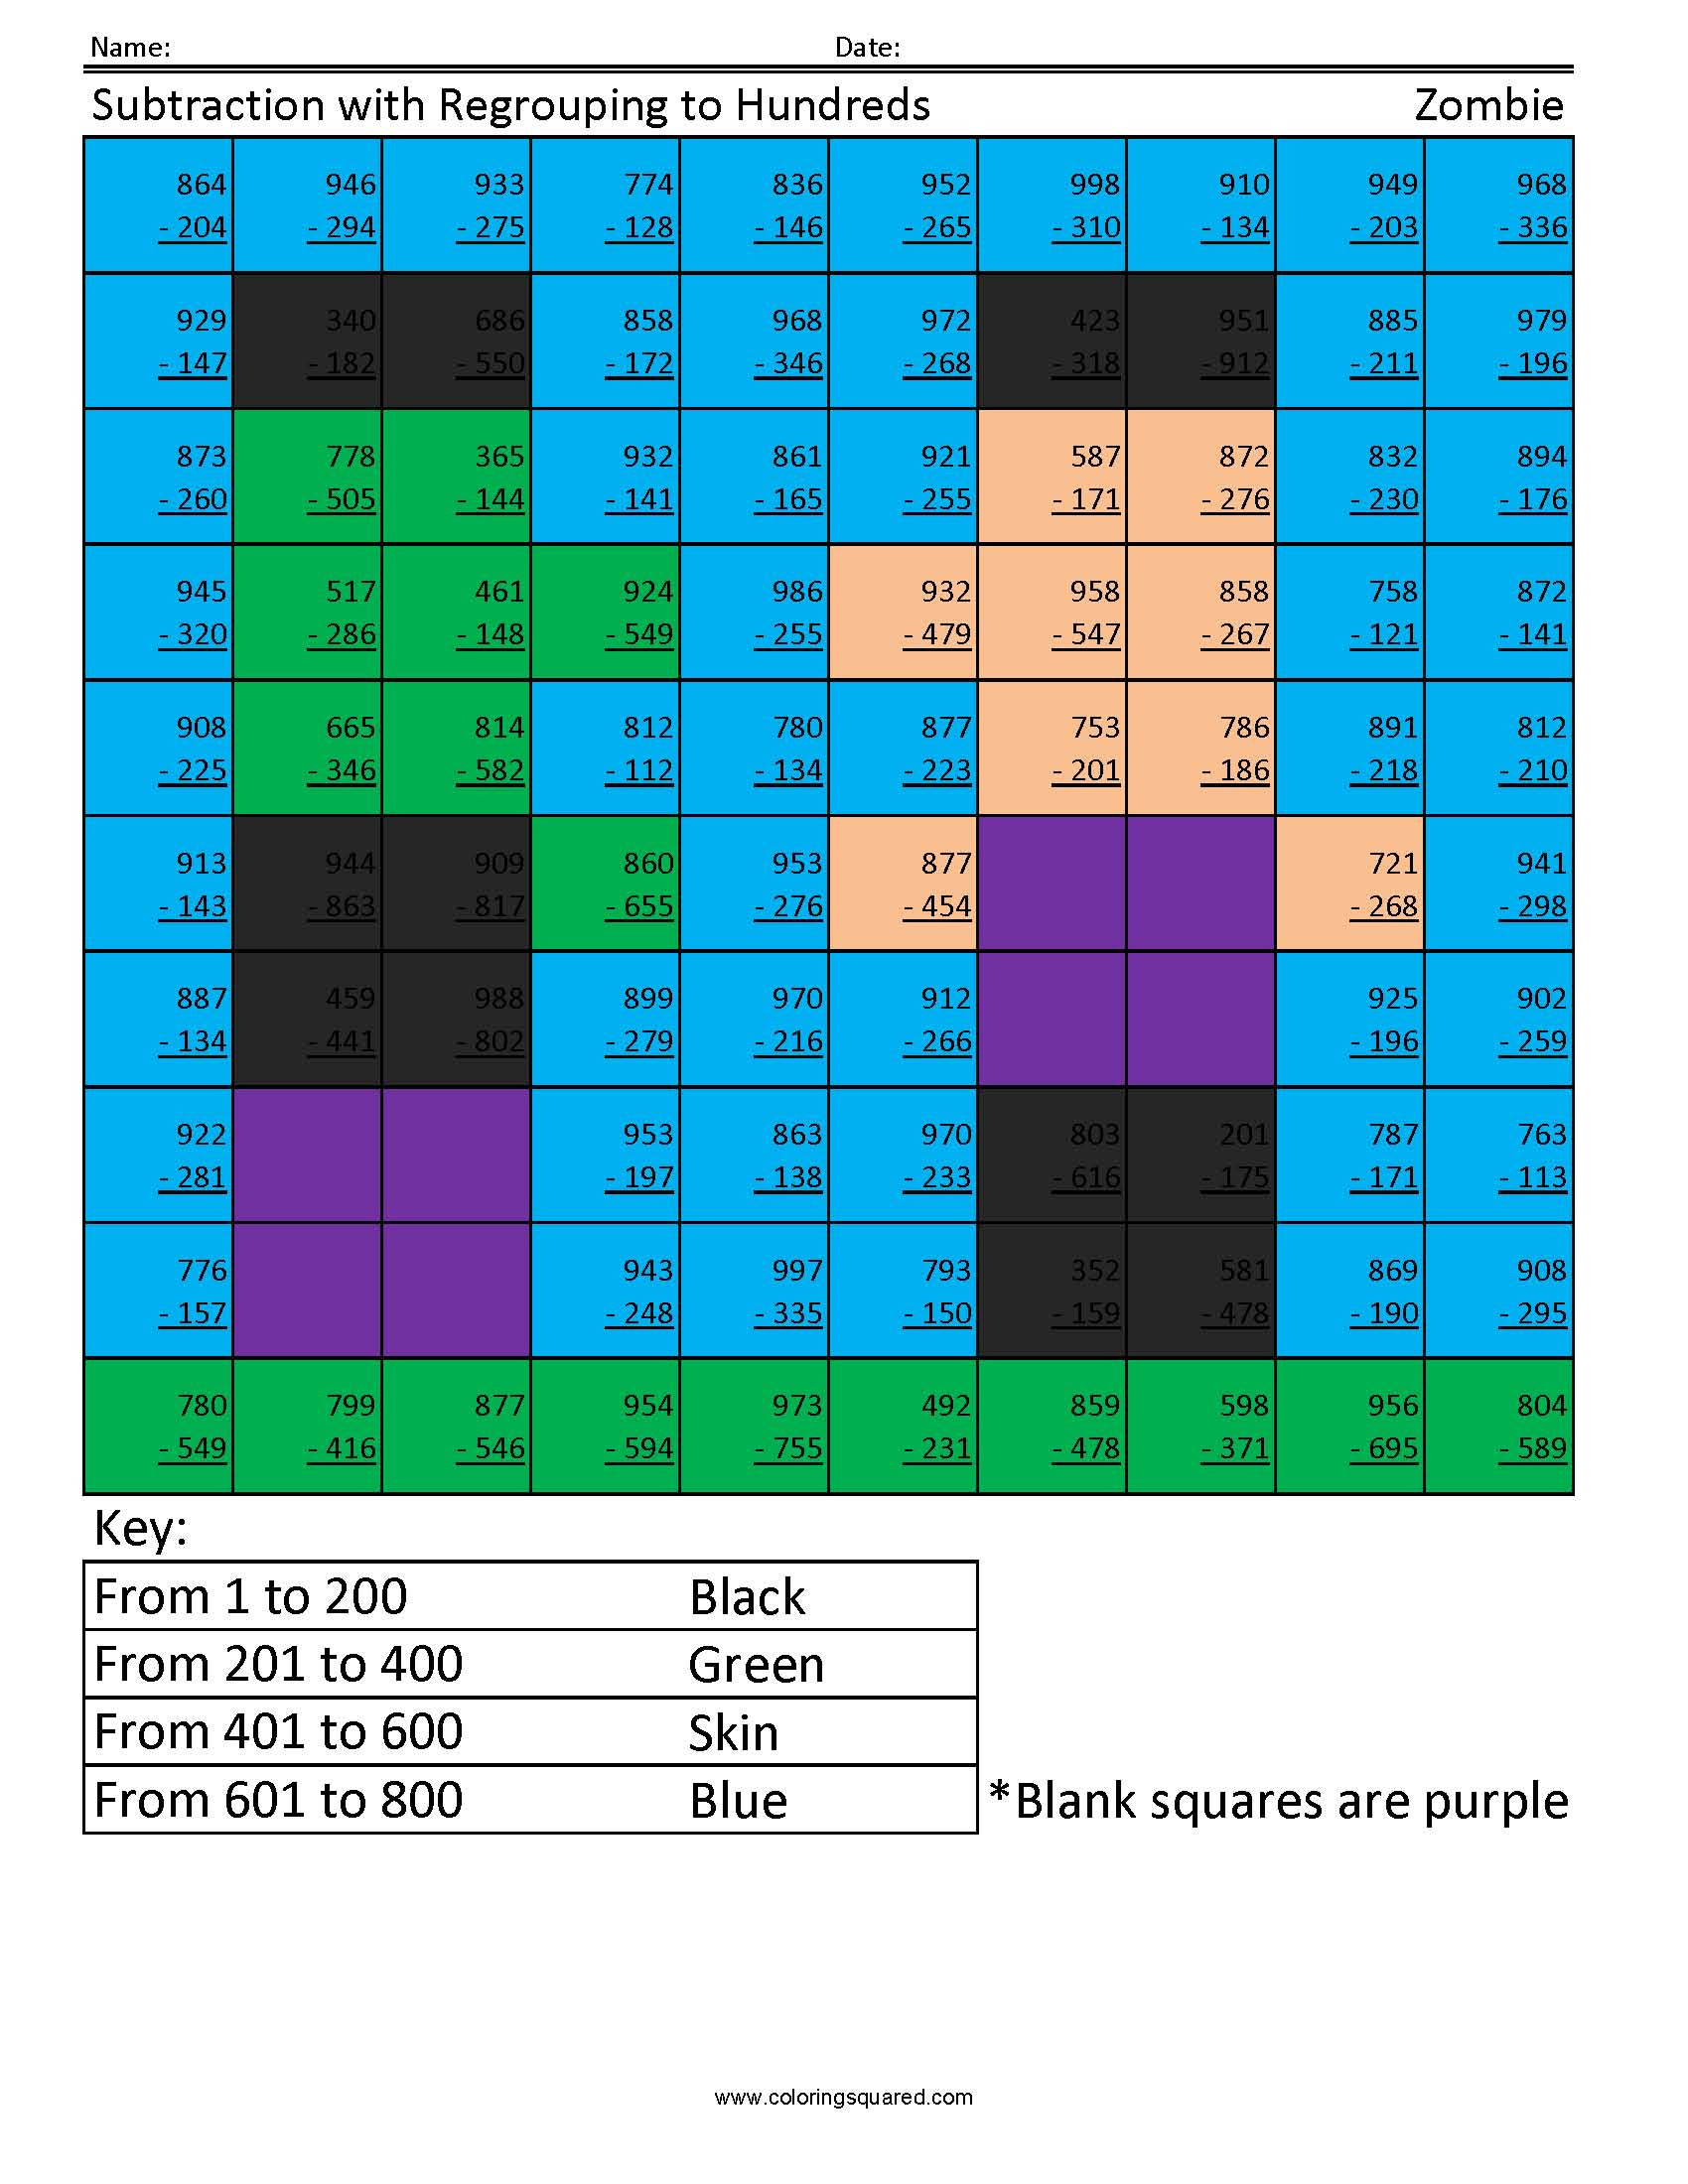 Regrouping Subtraction Worksheets 3rd Grade Subtraction with Regrouping Zombie Coloring Squared